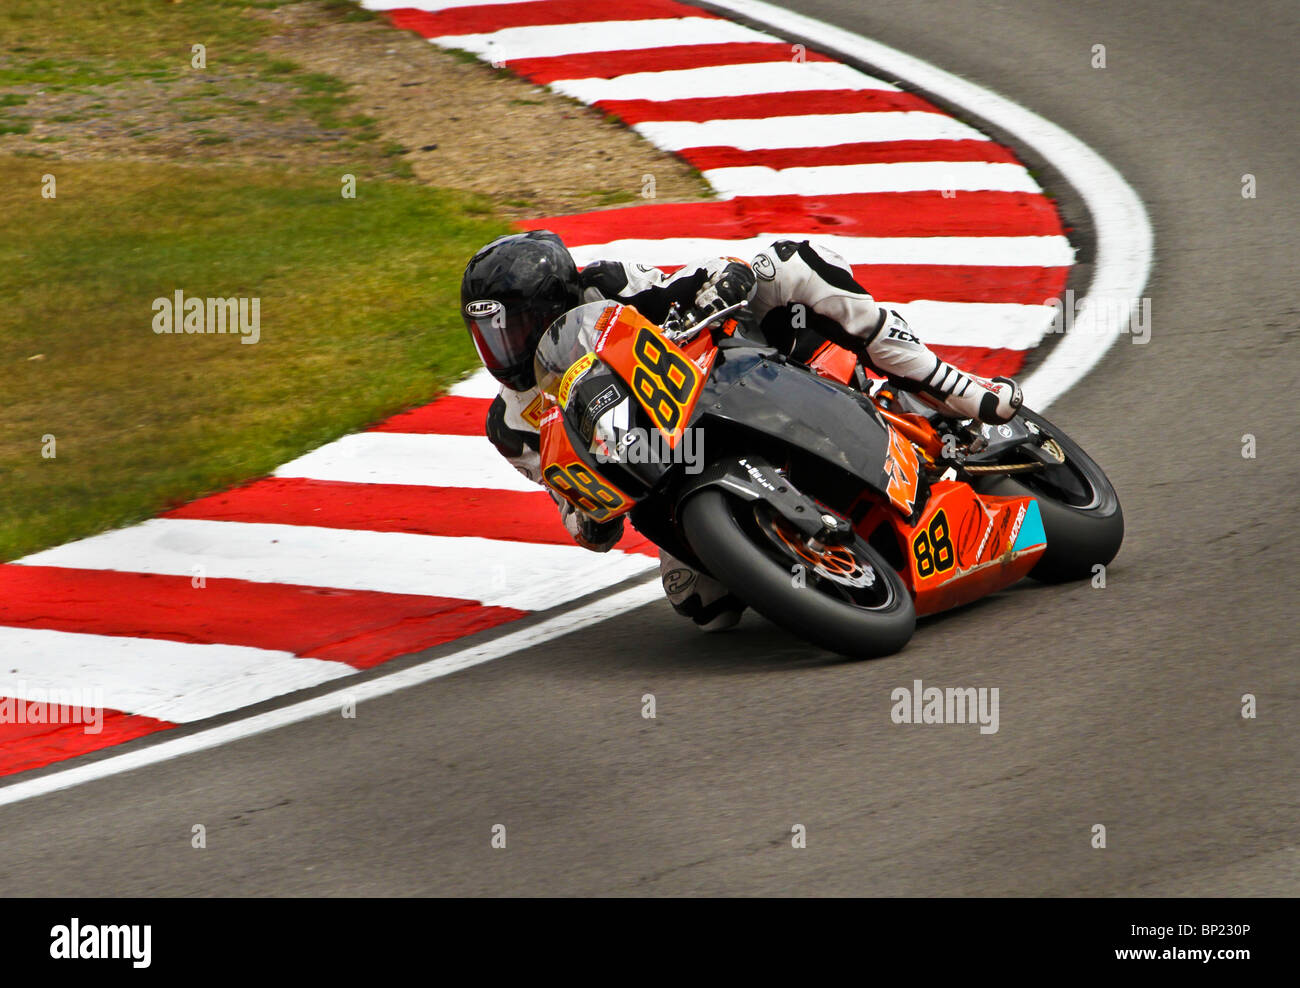 James EDMEADES of Redline KTM leans into a corner on the historic GP circuit at Brands Hatch, Kent. - Stock Image